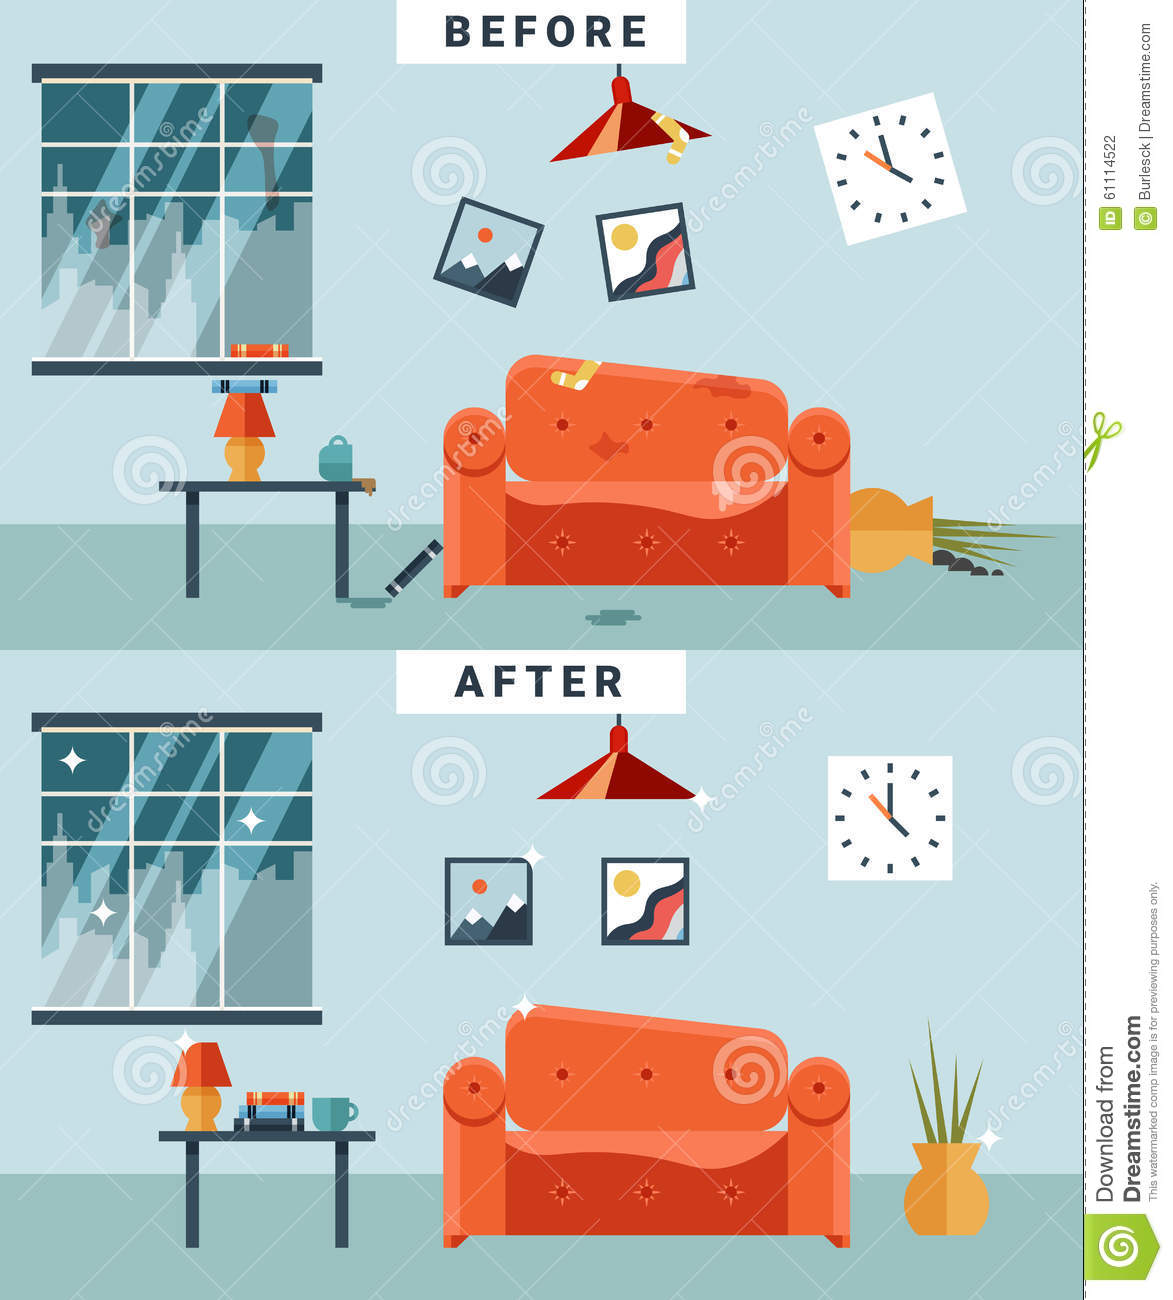 Messy Room Garbage: Dirty And Clean Room Stock Vector. Illustration Of Glass